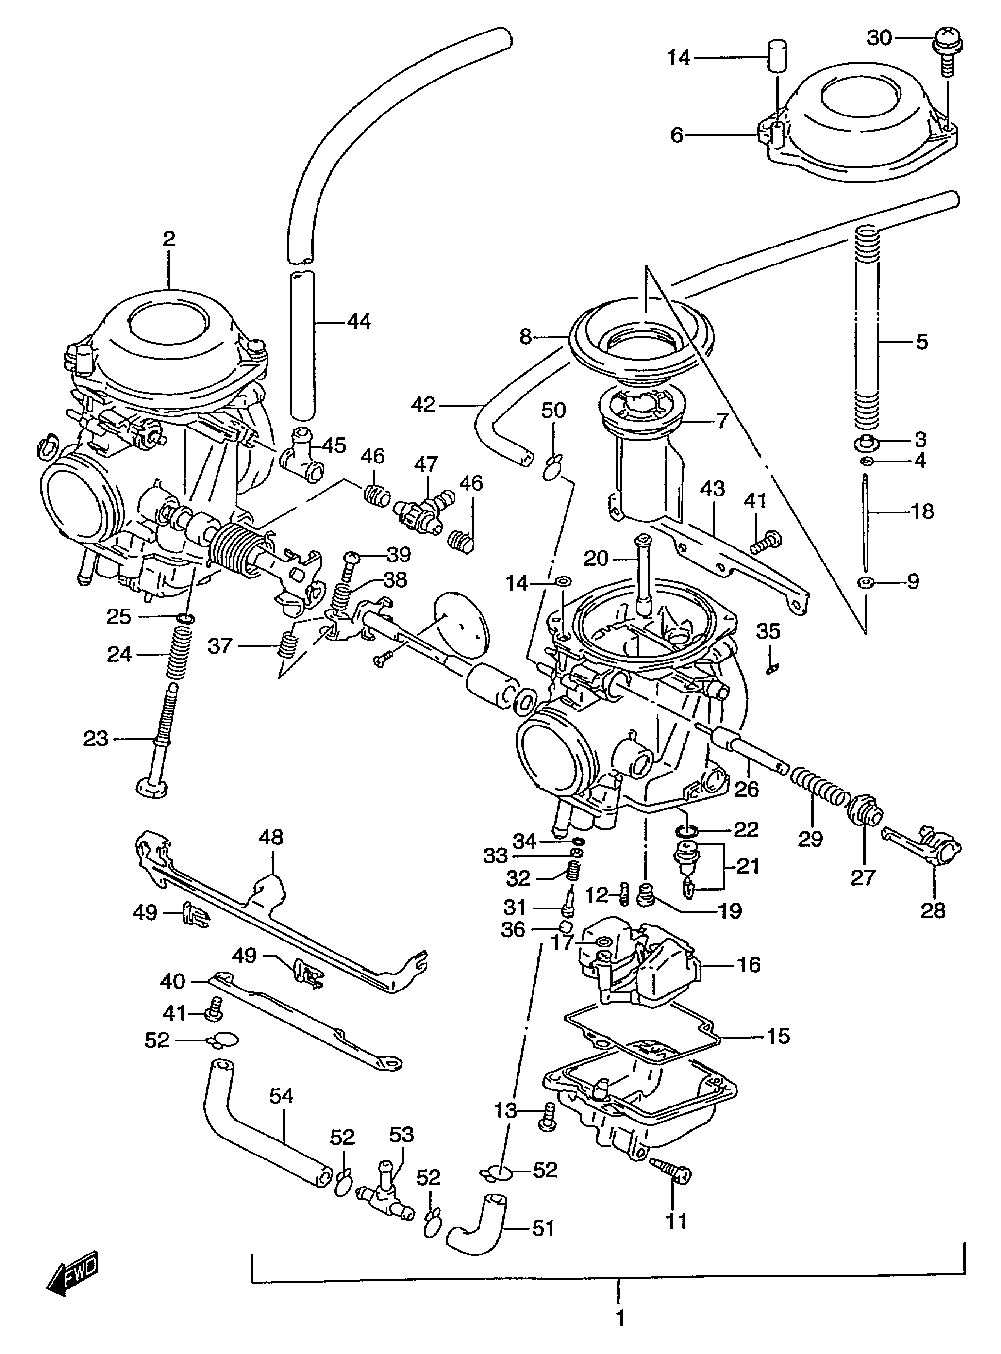 Suzuki Drz Carb Problems An Easy Question On Where A Washer Goes For Stuck Ltz Carburetor Diagram besides S L also S L likewise Ce moreover Gs Ecarburetorv W X Y. on suzuki ltz 400 carburetor diagram